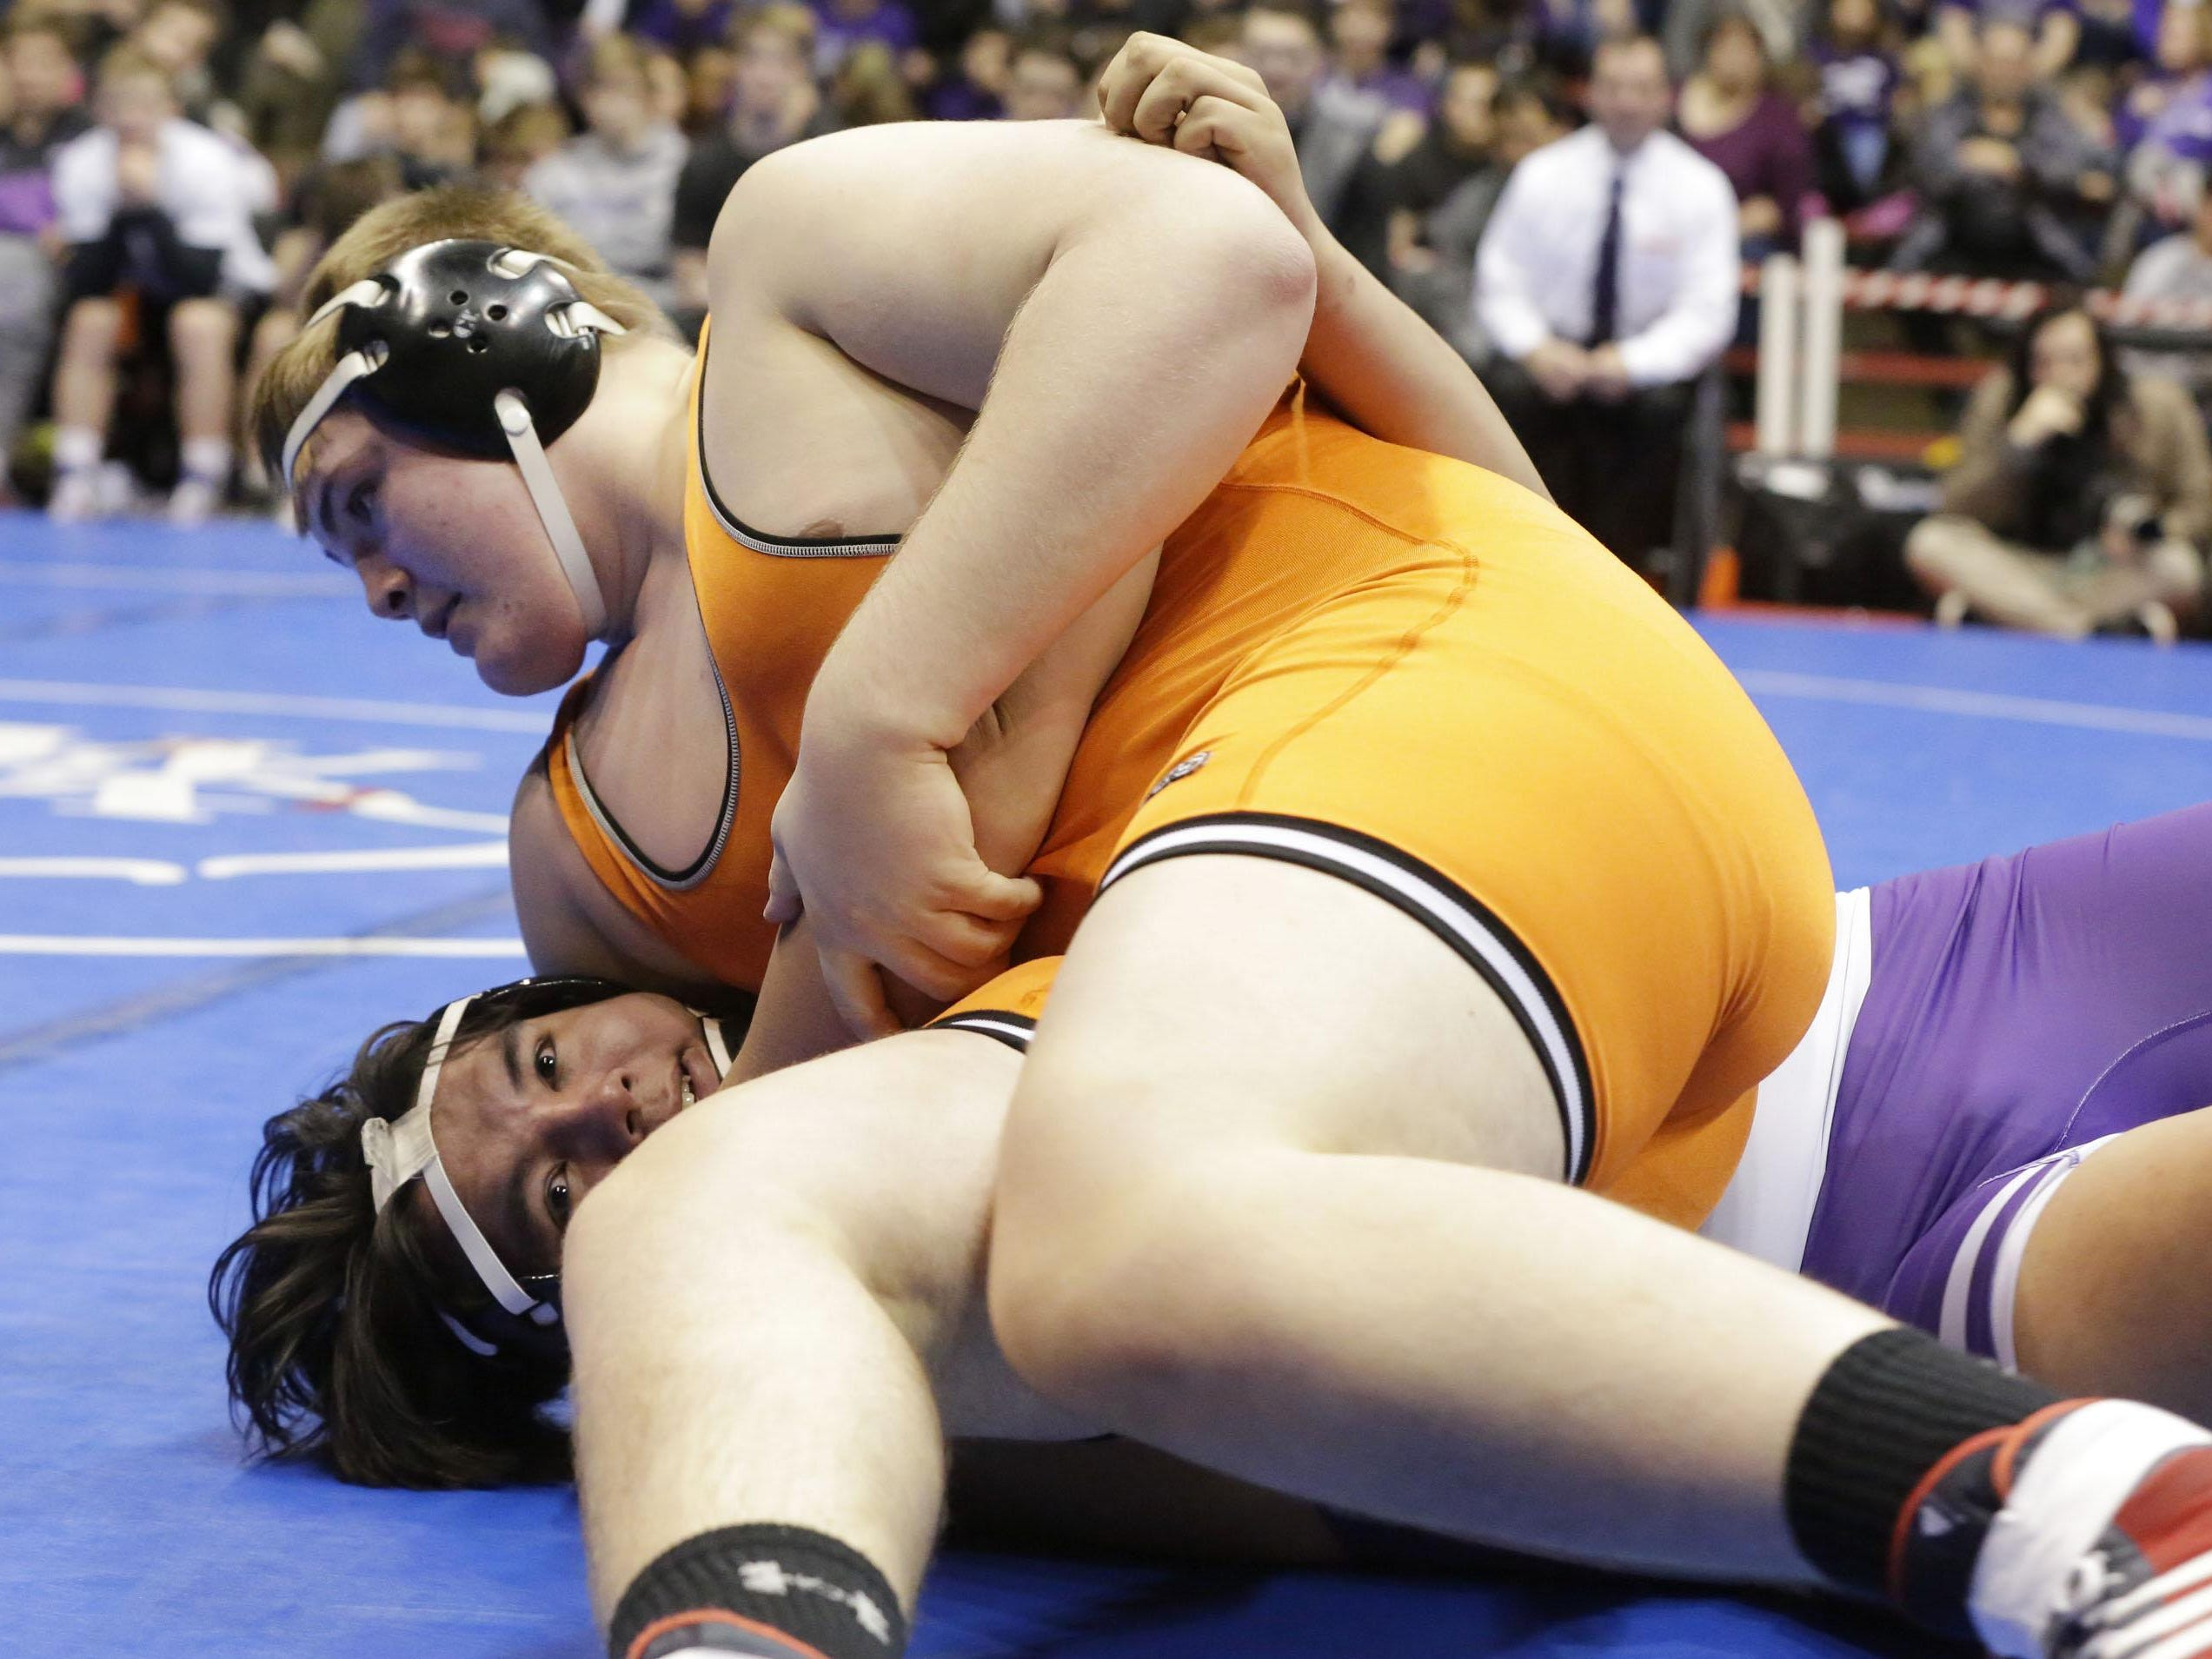 Kaukauna's Keaton Kluever, top, controls Stoughton's Aodan Marshall in the 285-pound match Saturday against Stoughton at the WIAA Division 1 state wrestling team tournament in Madison. Kluever pinned Marshall in 52 seconds.